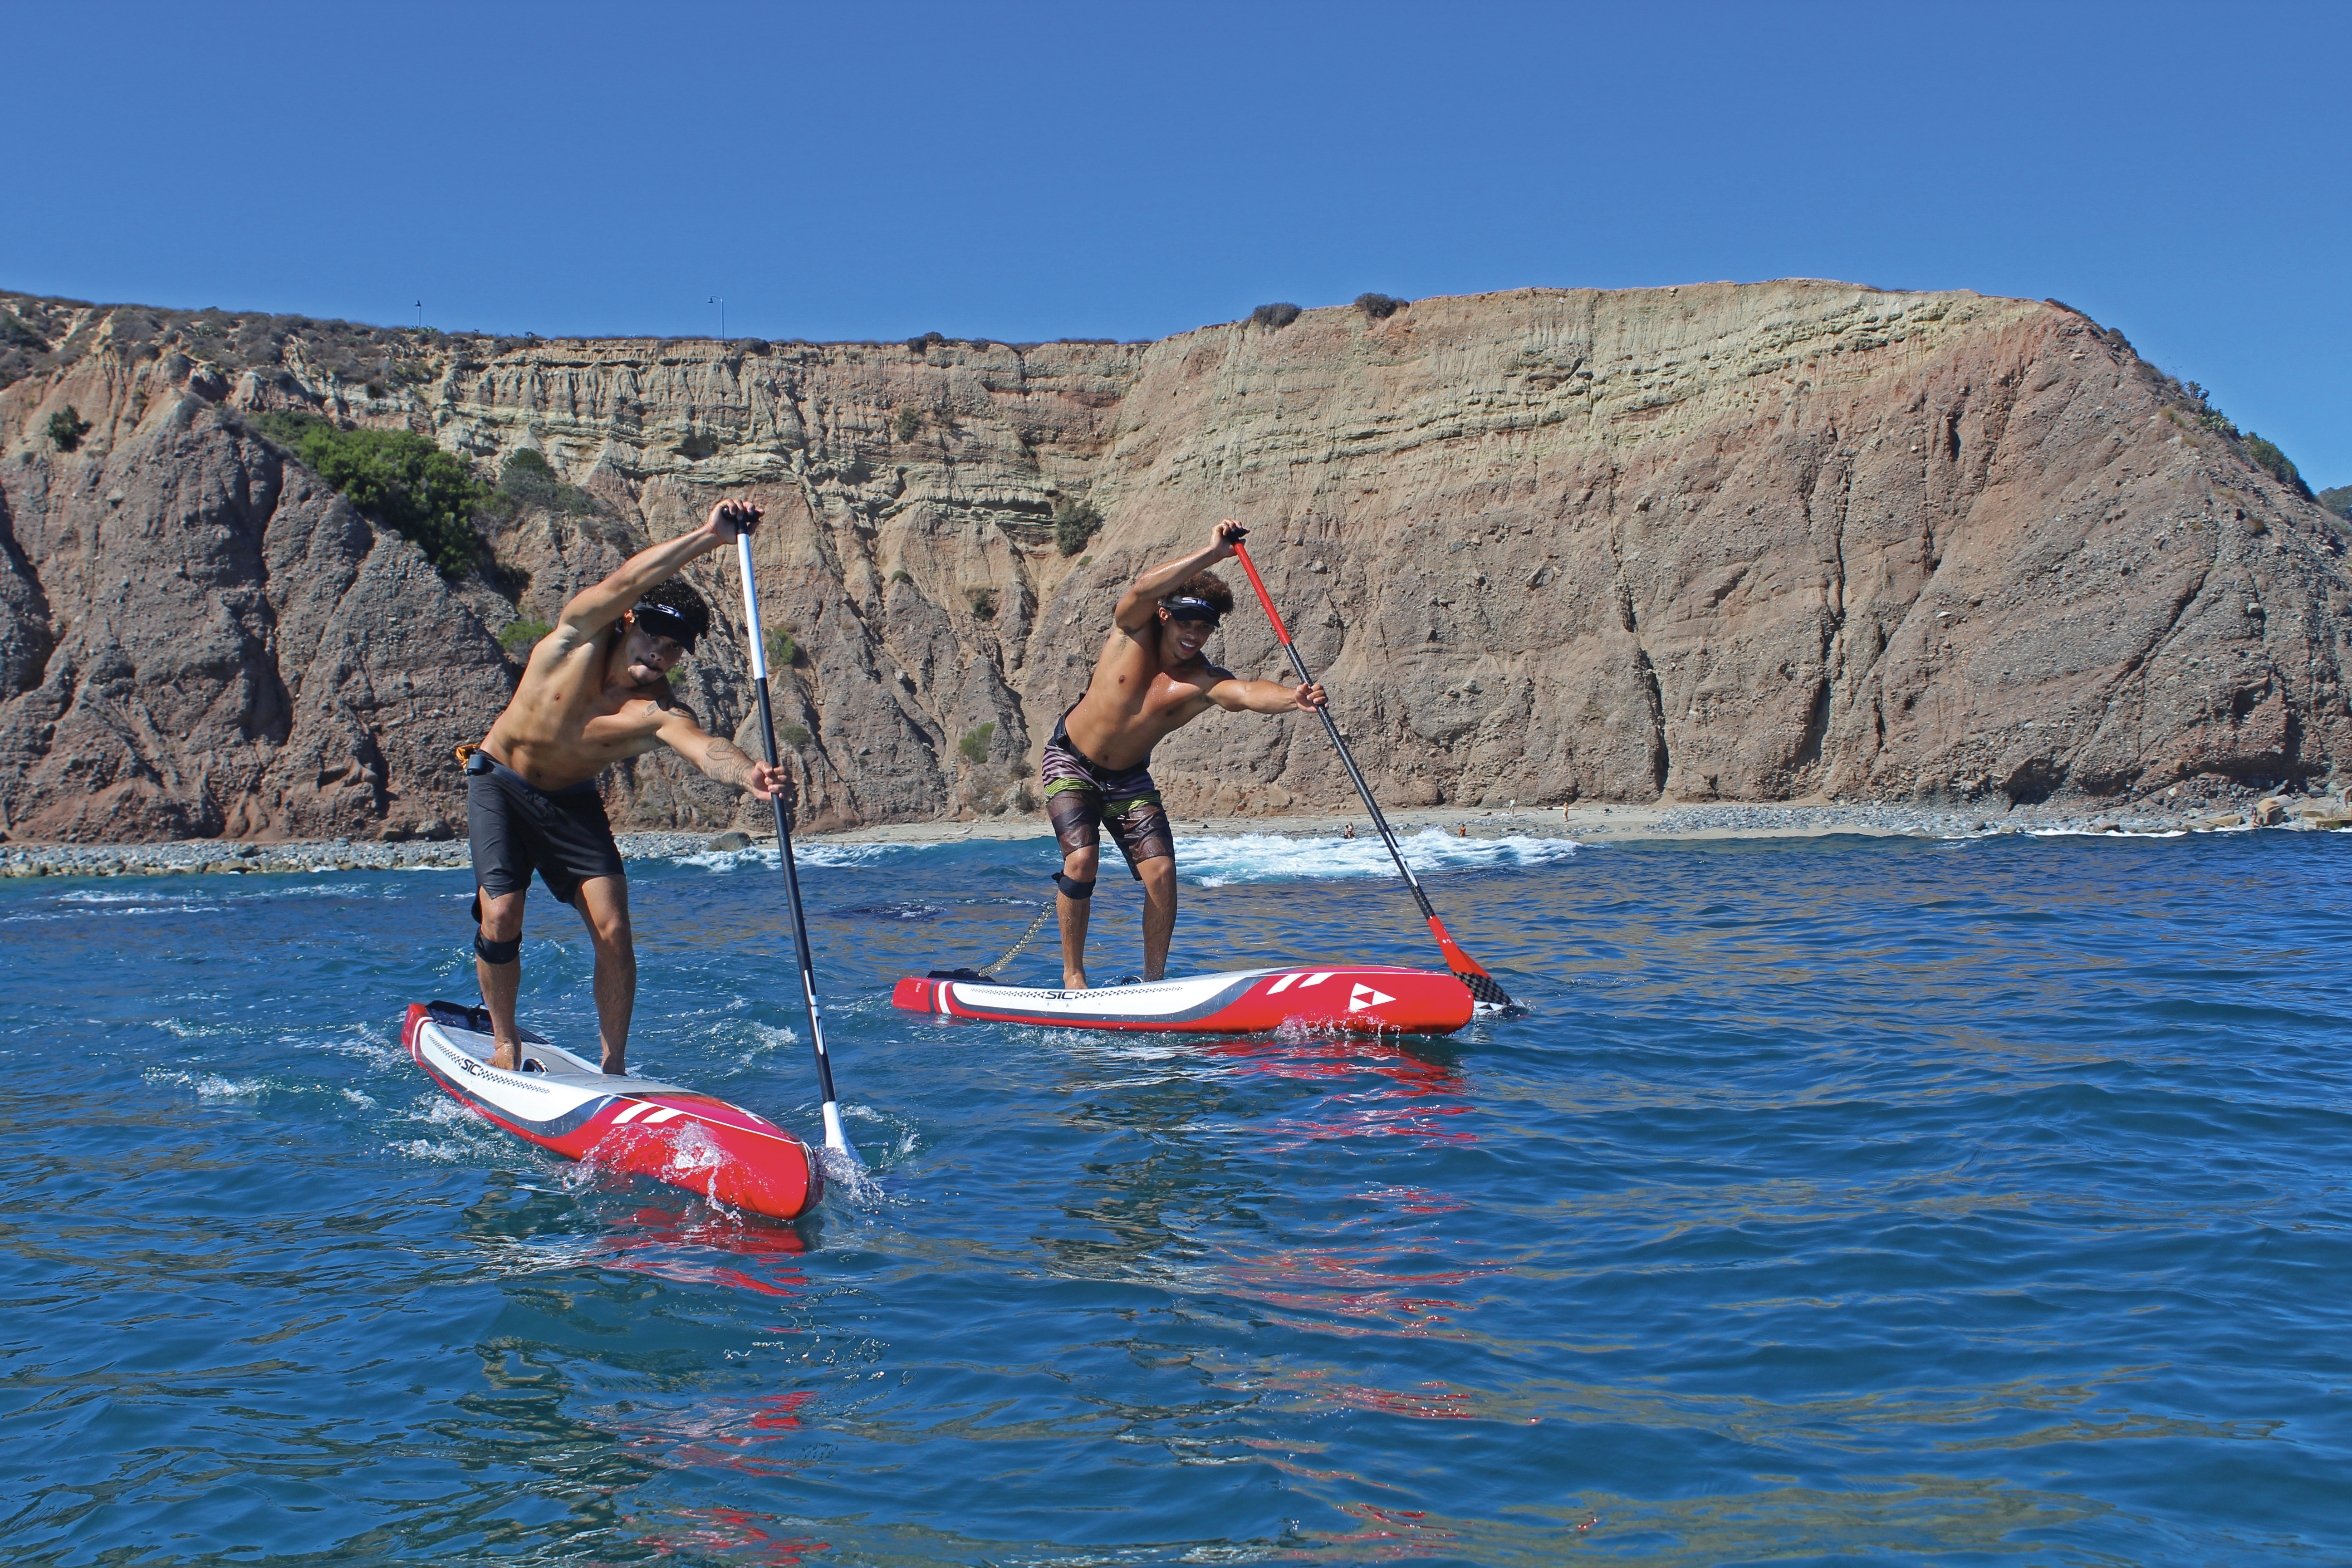 Two men racing on their SIC SUP boards